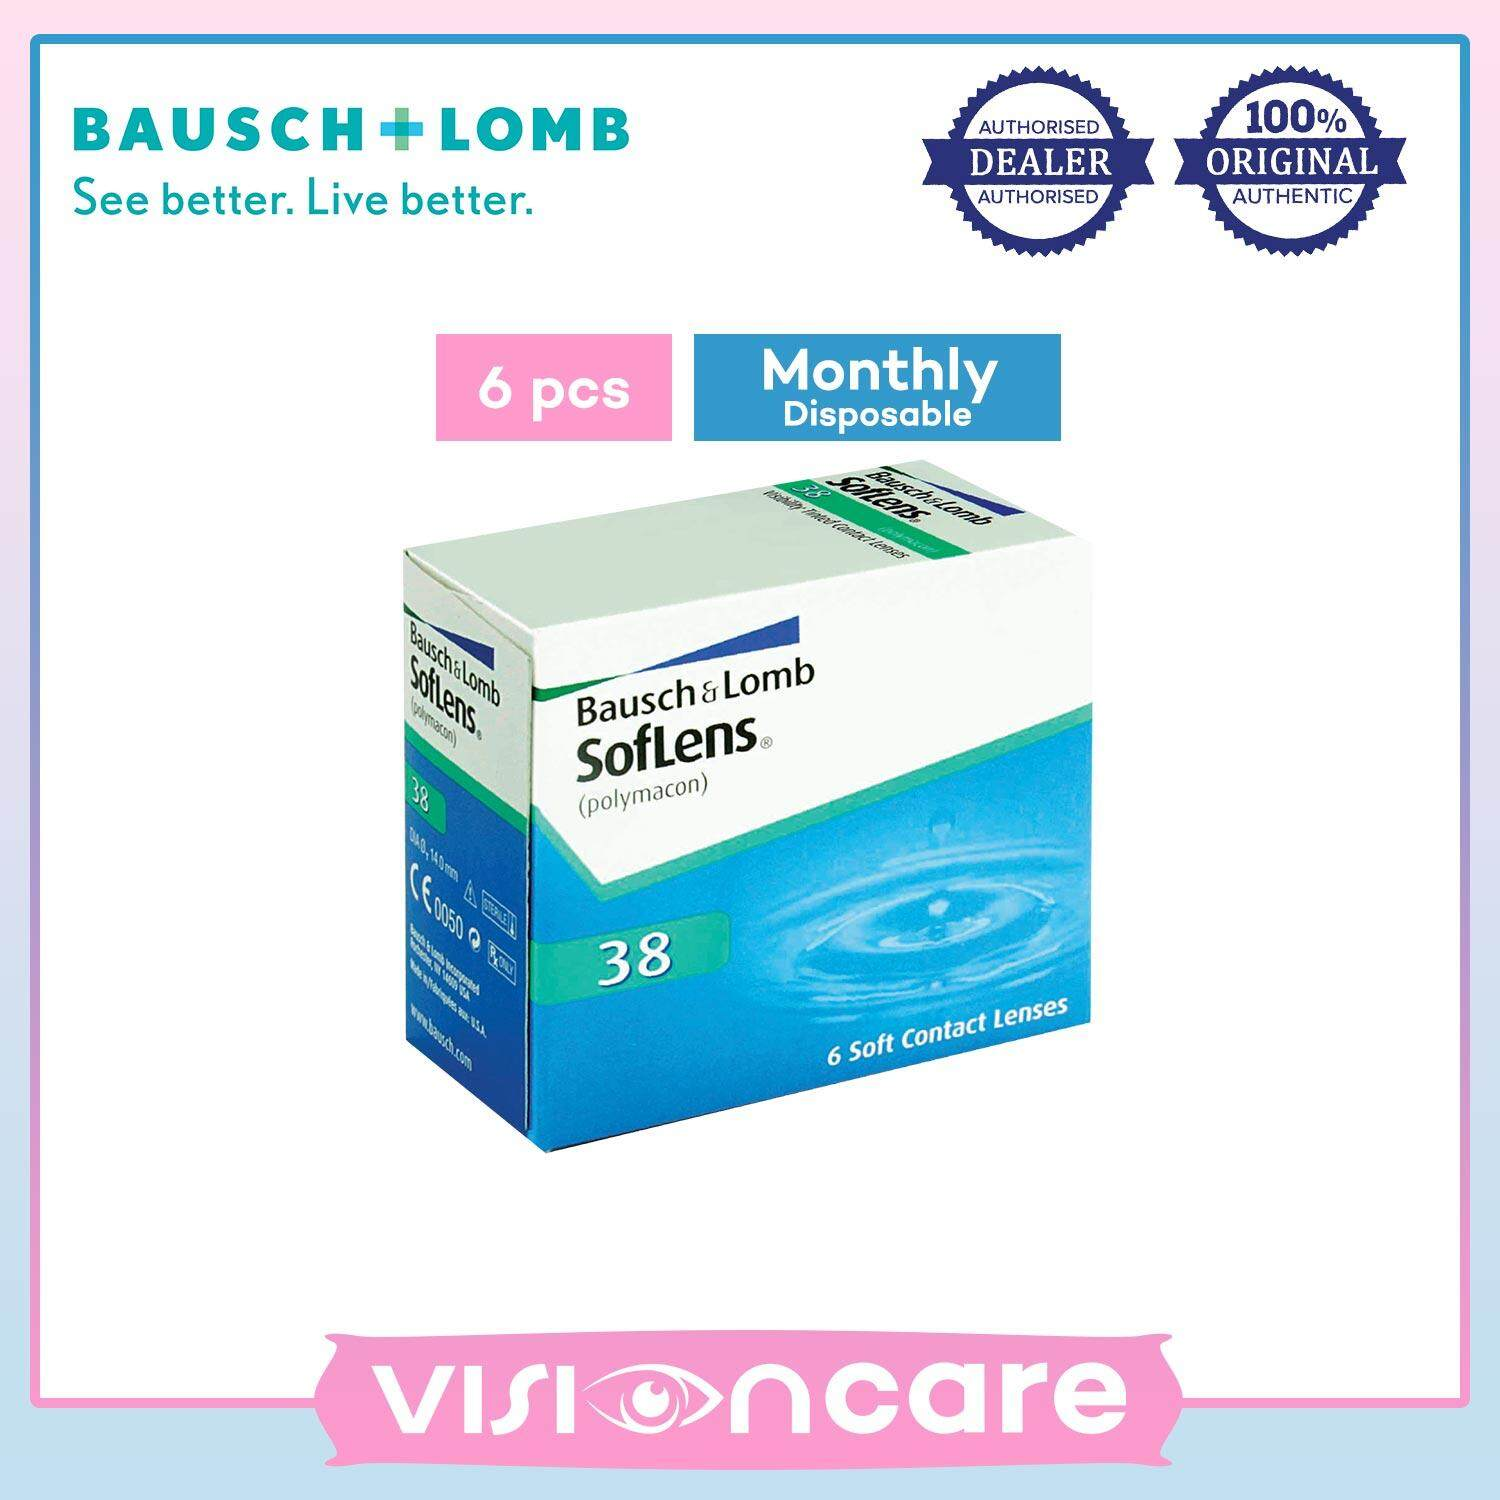 Bausch & Lomb SofLens 38 Monthly Clear Contact Lenses